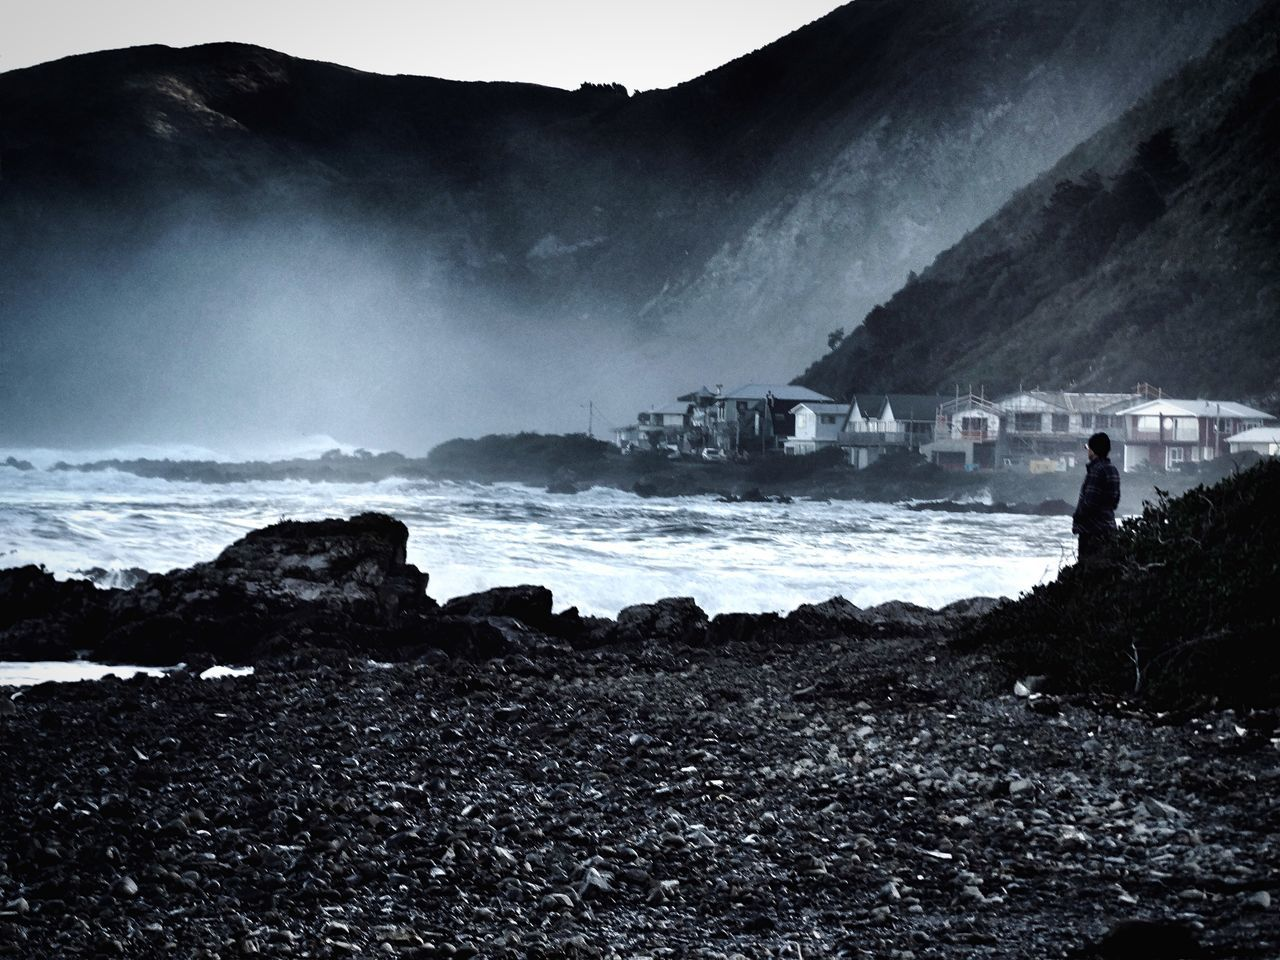 Shades Of Grey Seascape Photography Sea Mist Cliffs Rocks People Man watching the waves and mist. South Coast, Wellington. Newzealandnatural Landscape_photography Newzealandphotography Landscapes With WhiteWall Telling Stories Differently Wellington Nz Owhiro Bay